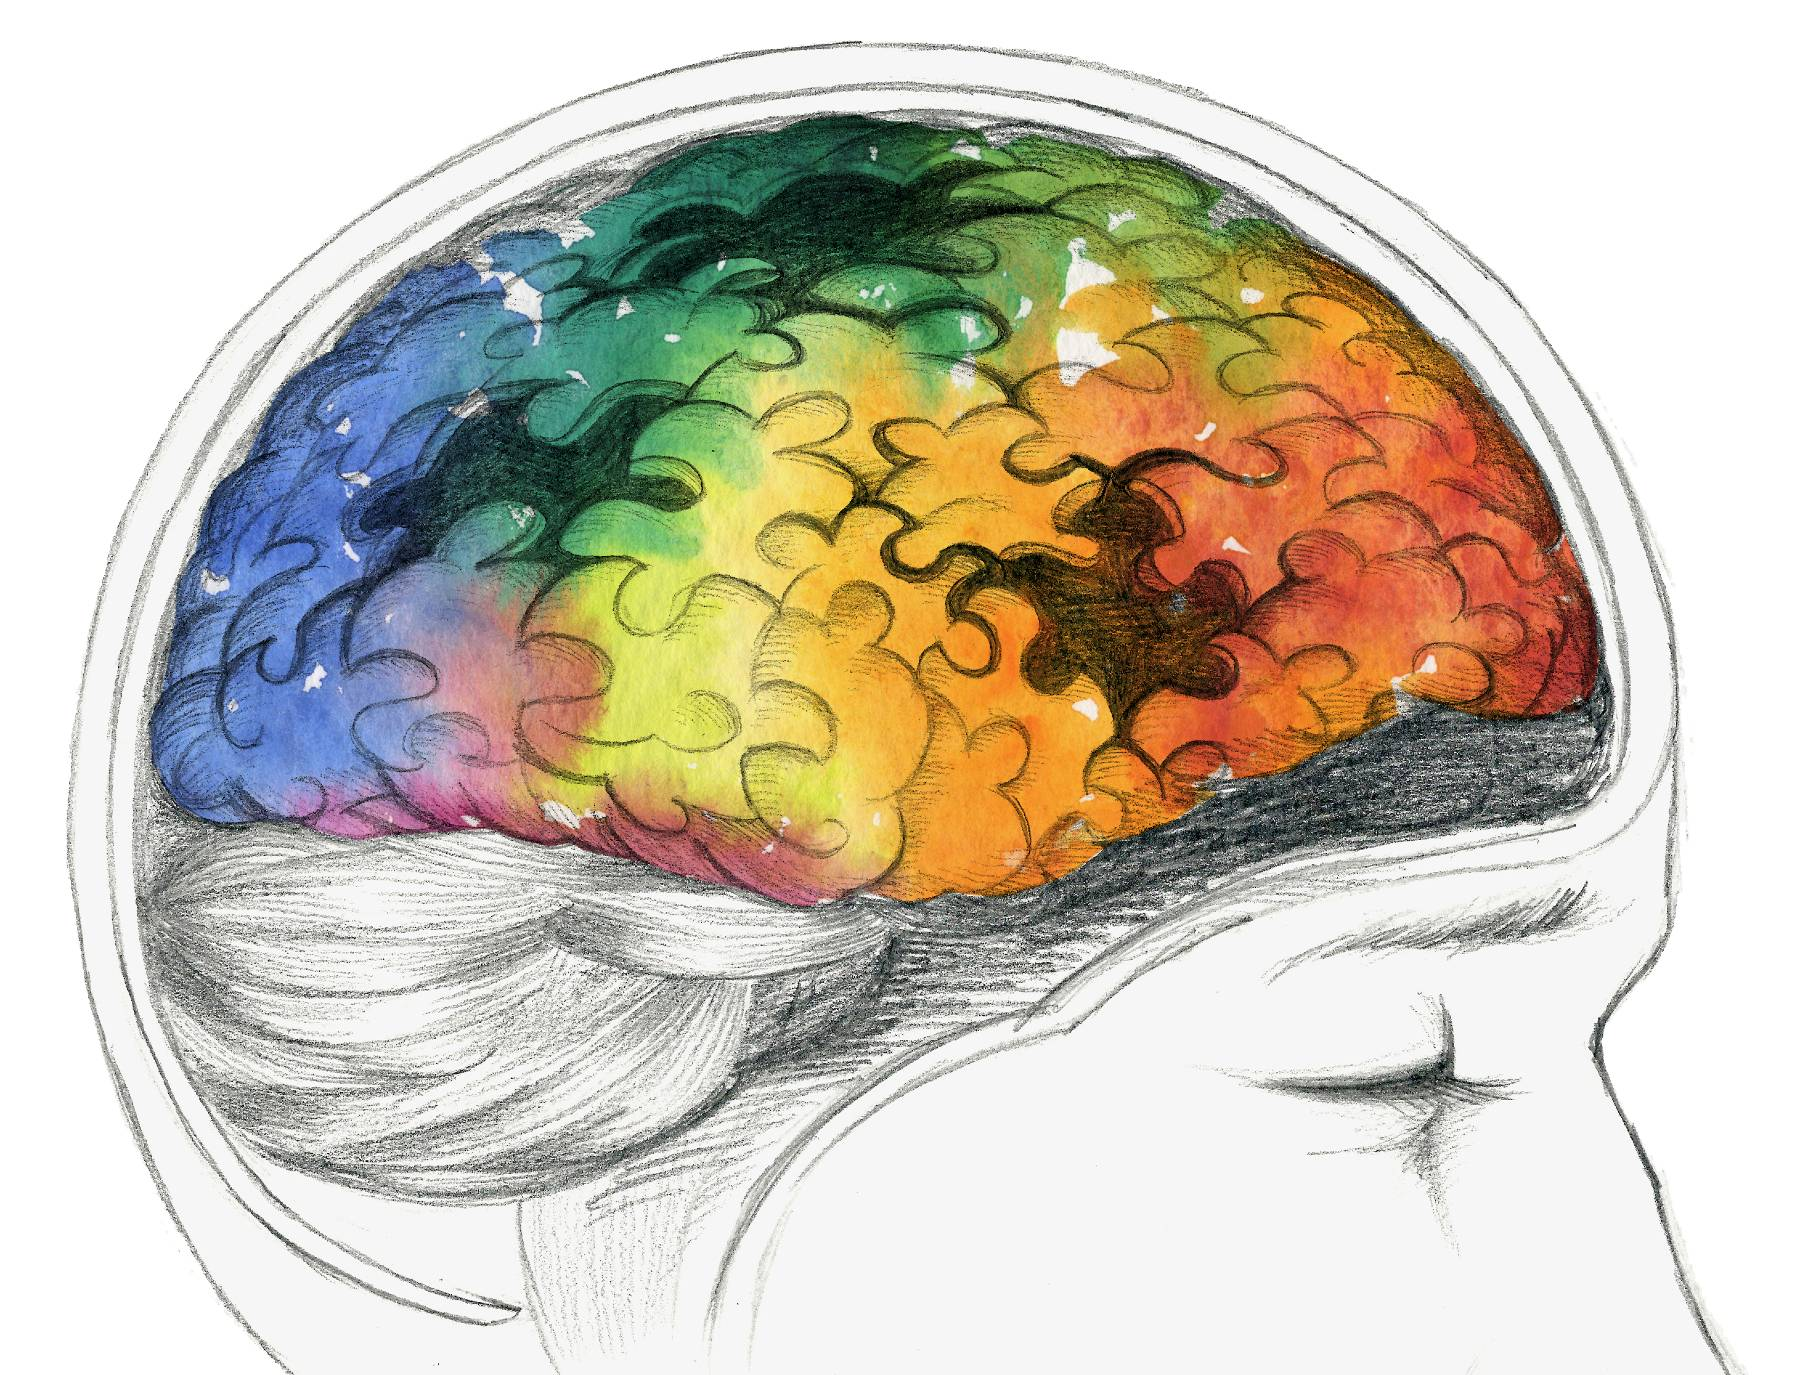 A drawing of a brain in multi-colors with black puzzle piece shapes missing